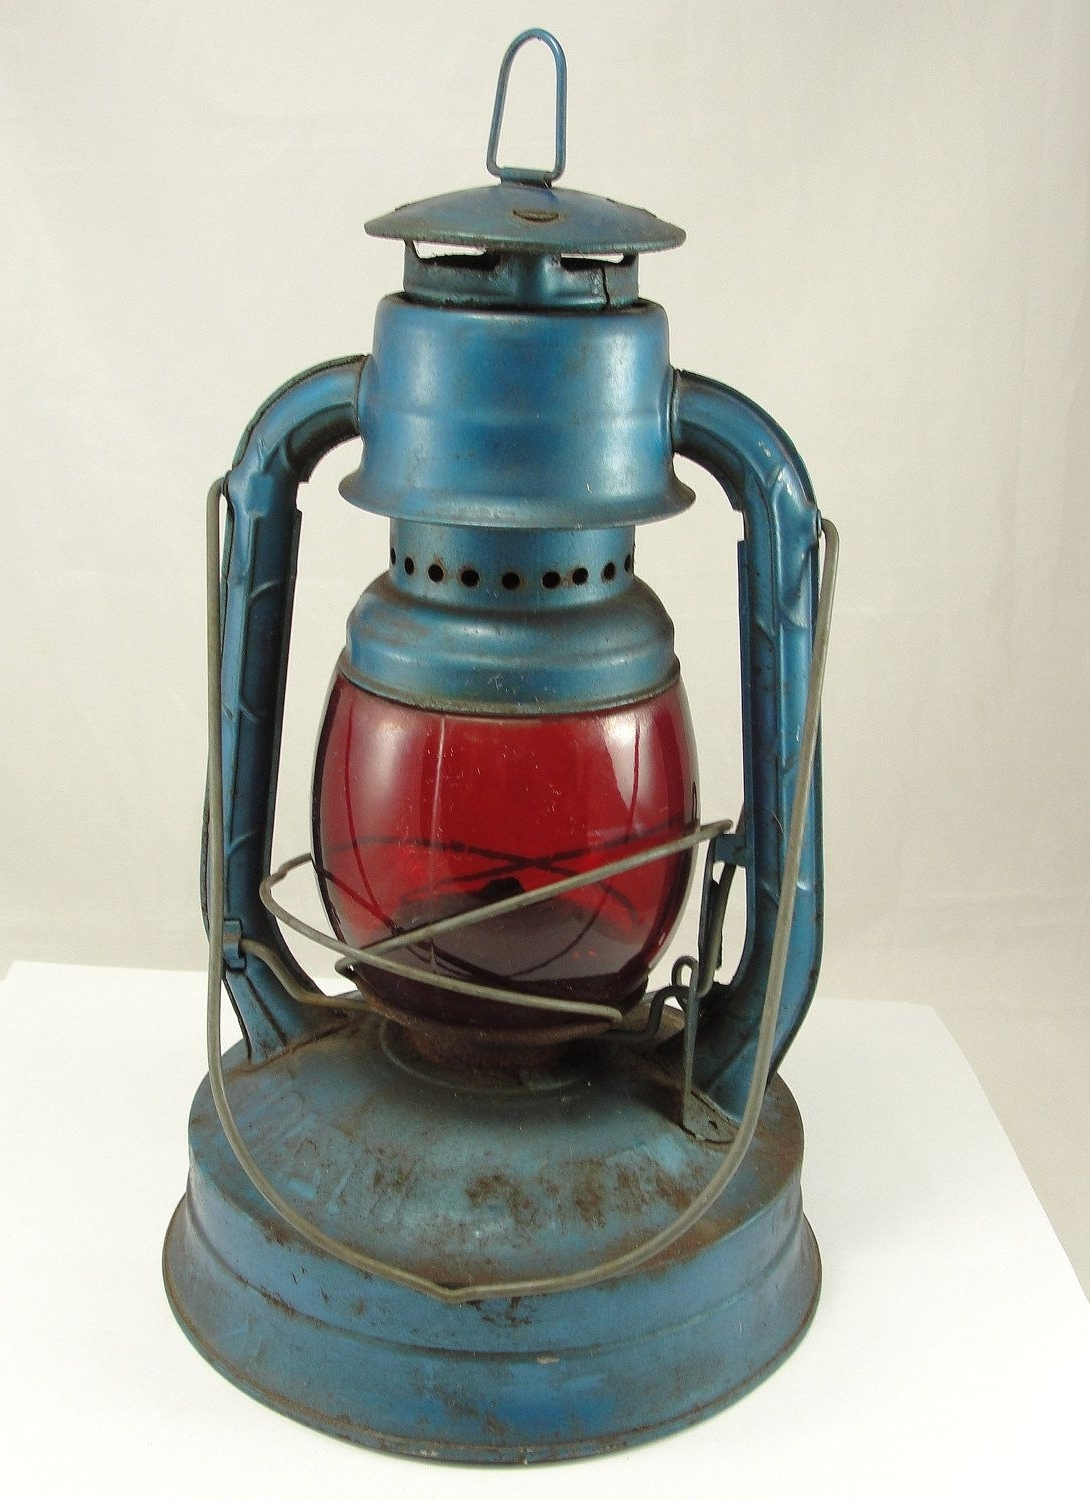 Vintage Dietz Lantern Railroad Intended For Outdoor Railroad Lanterns (View 17 of 20)